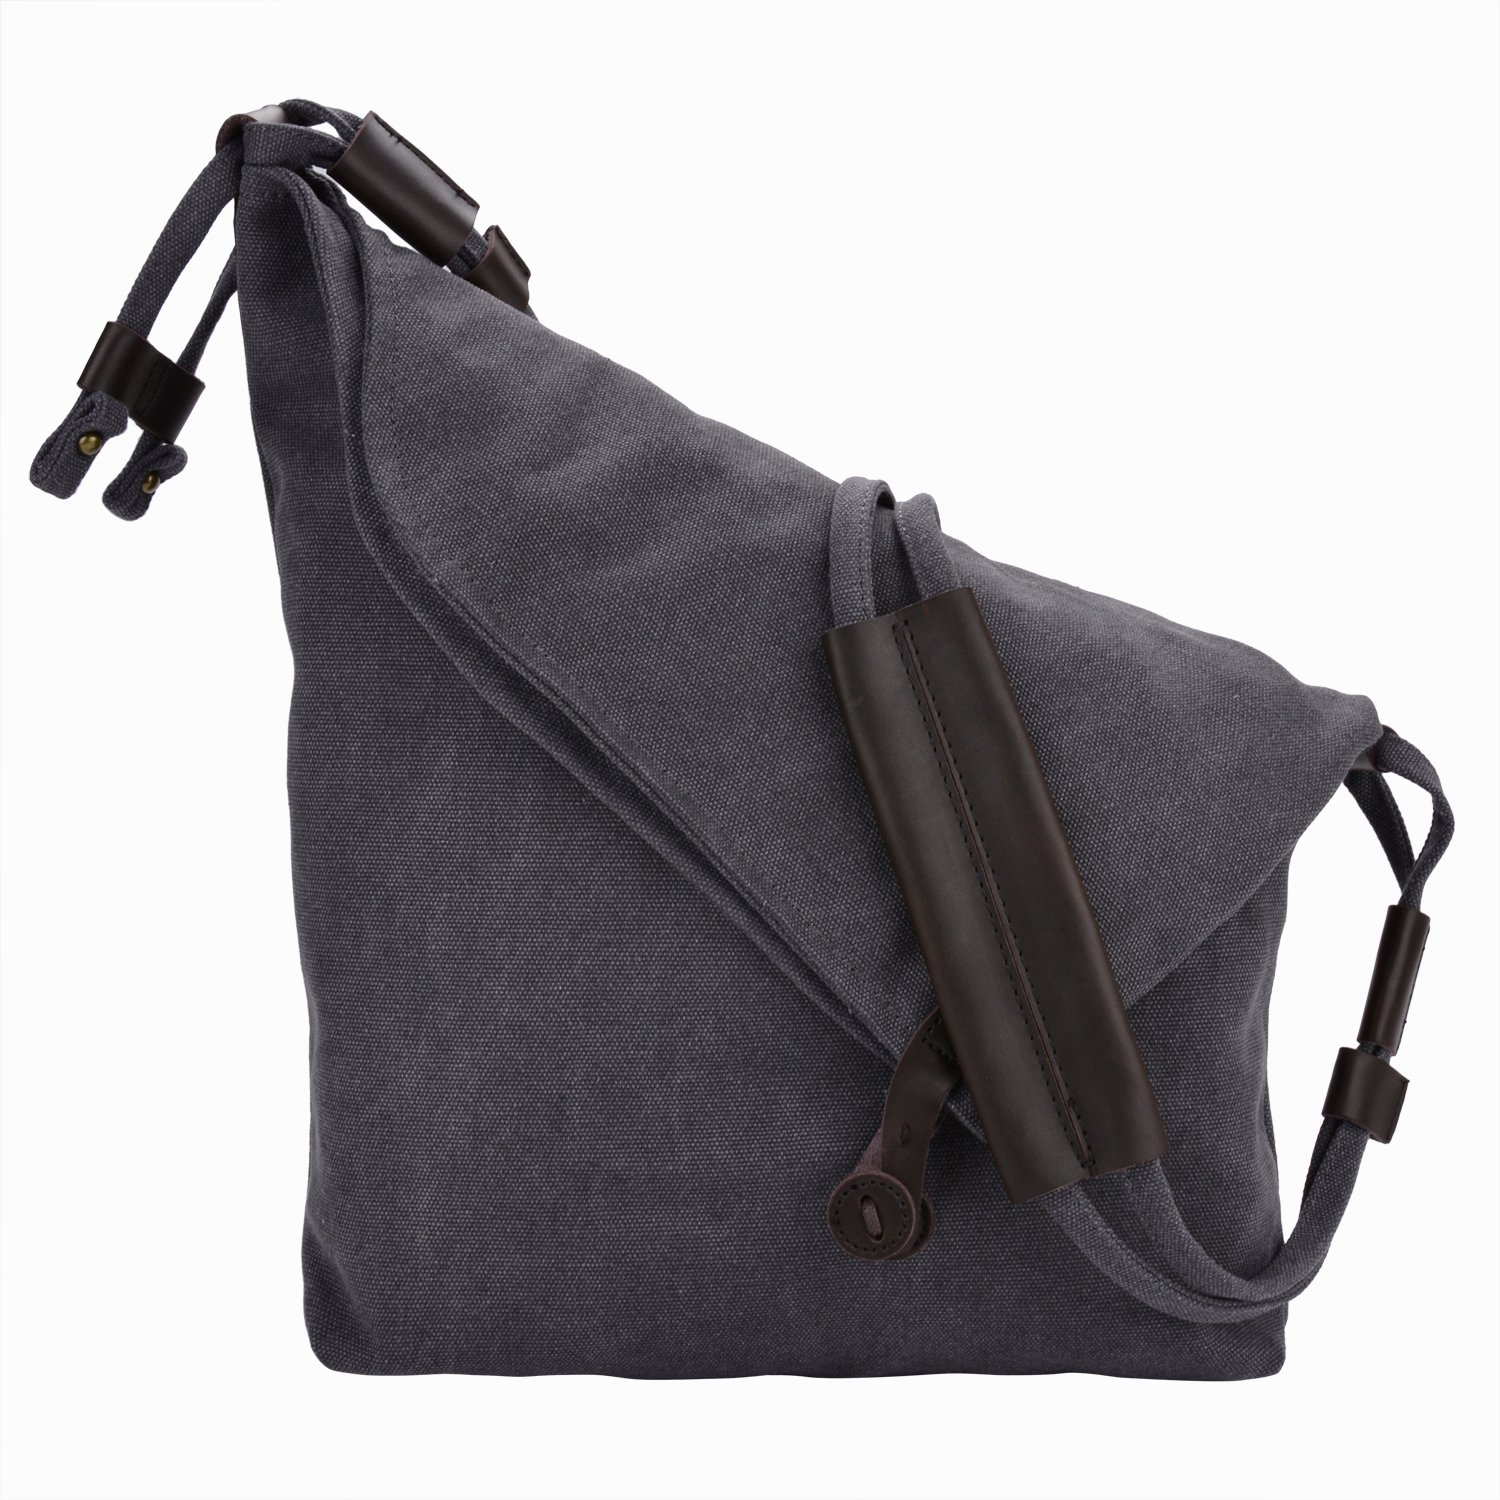 Crossbody Bag,COOFIT Messenger Bag Casual Canvas Hobo Bag Shouder Bag Unisex